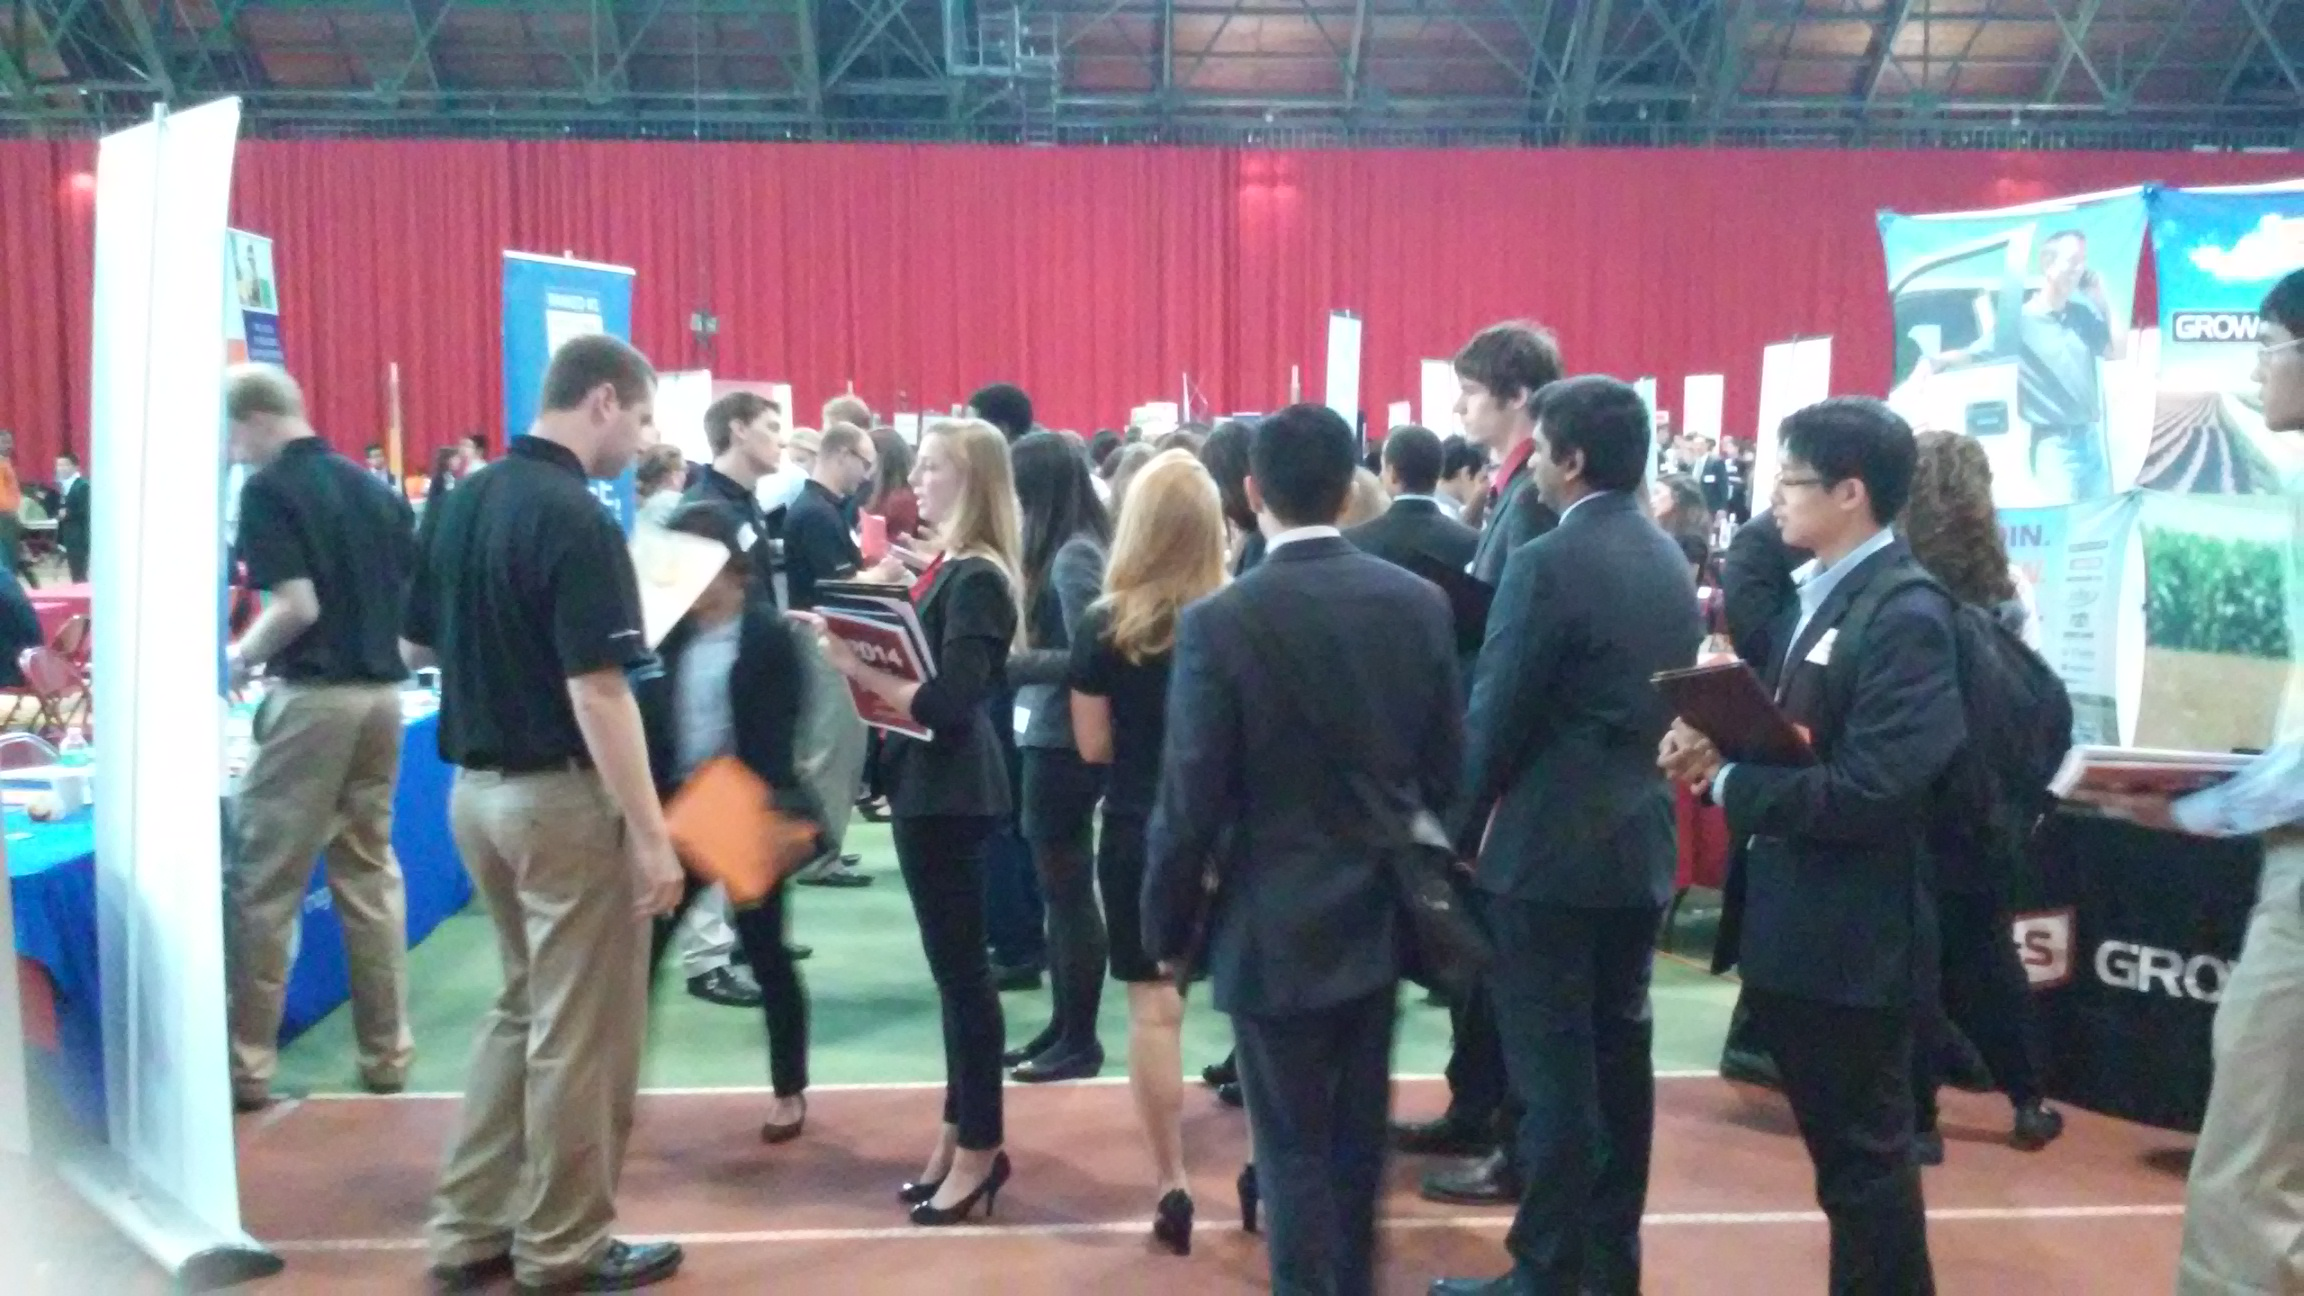 First 150 Entrants to Career Fair to Get T-Shirt, Fulfilling